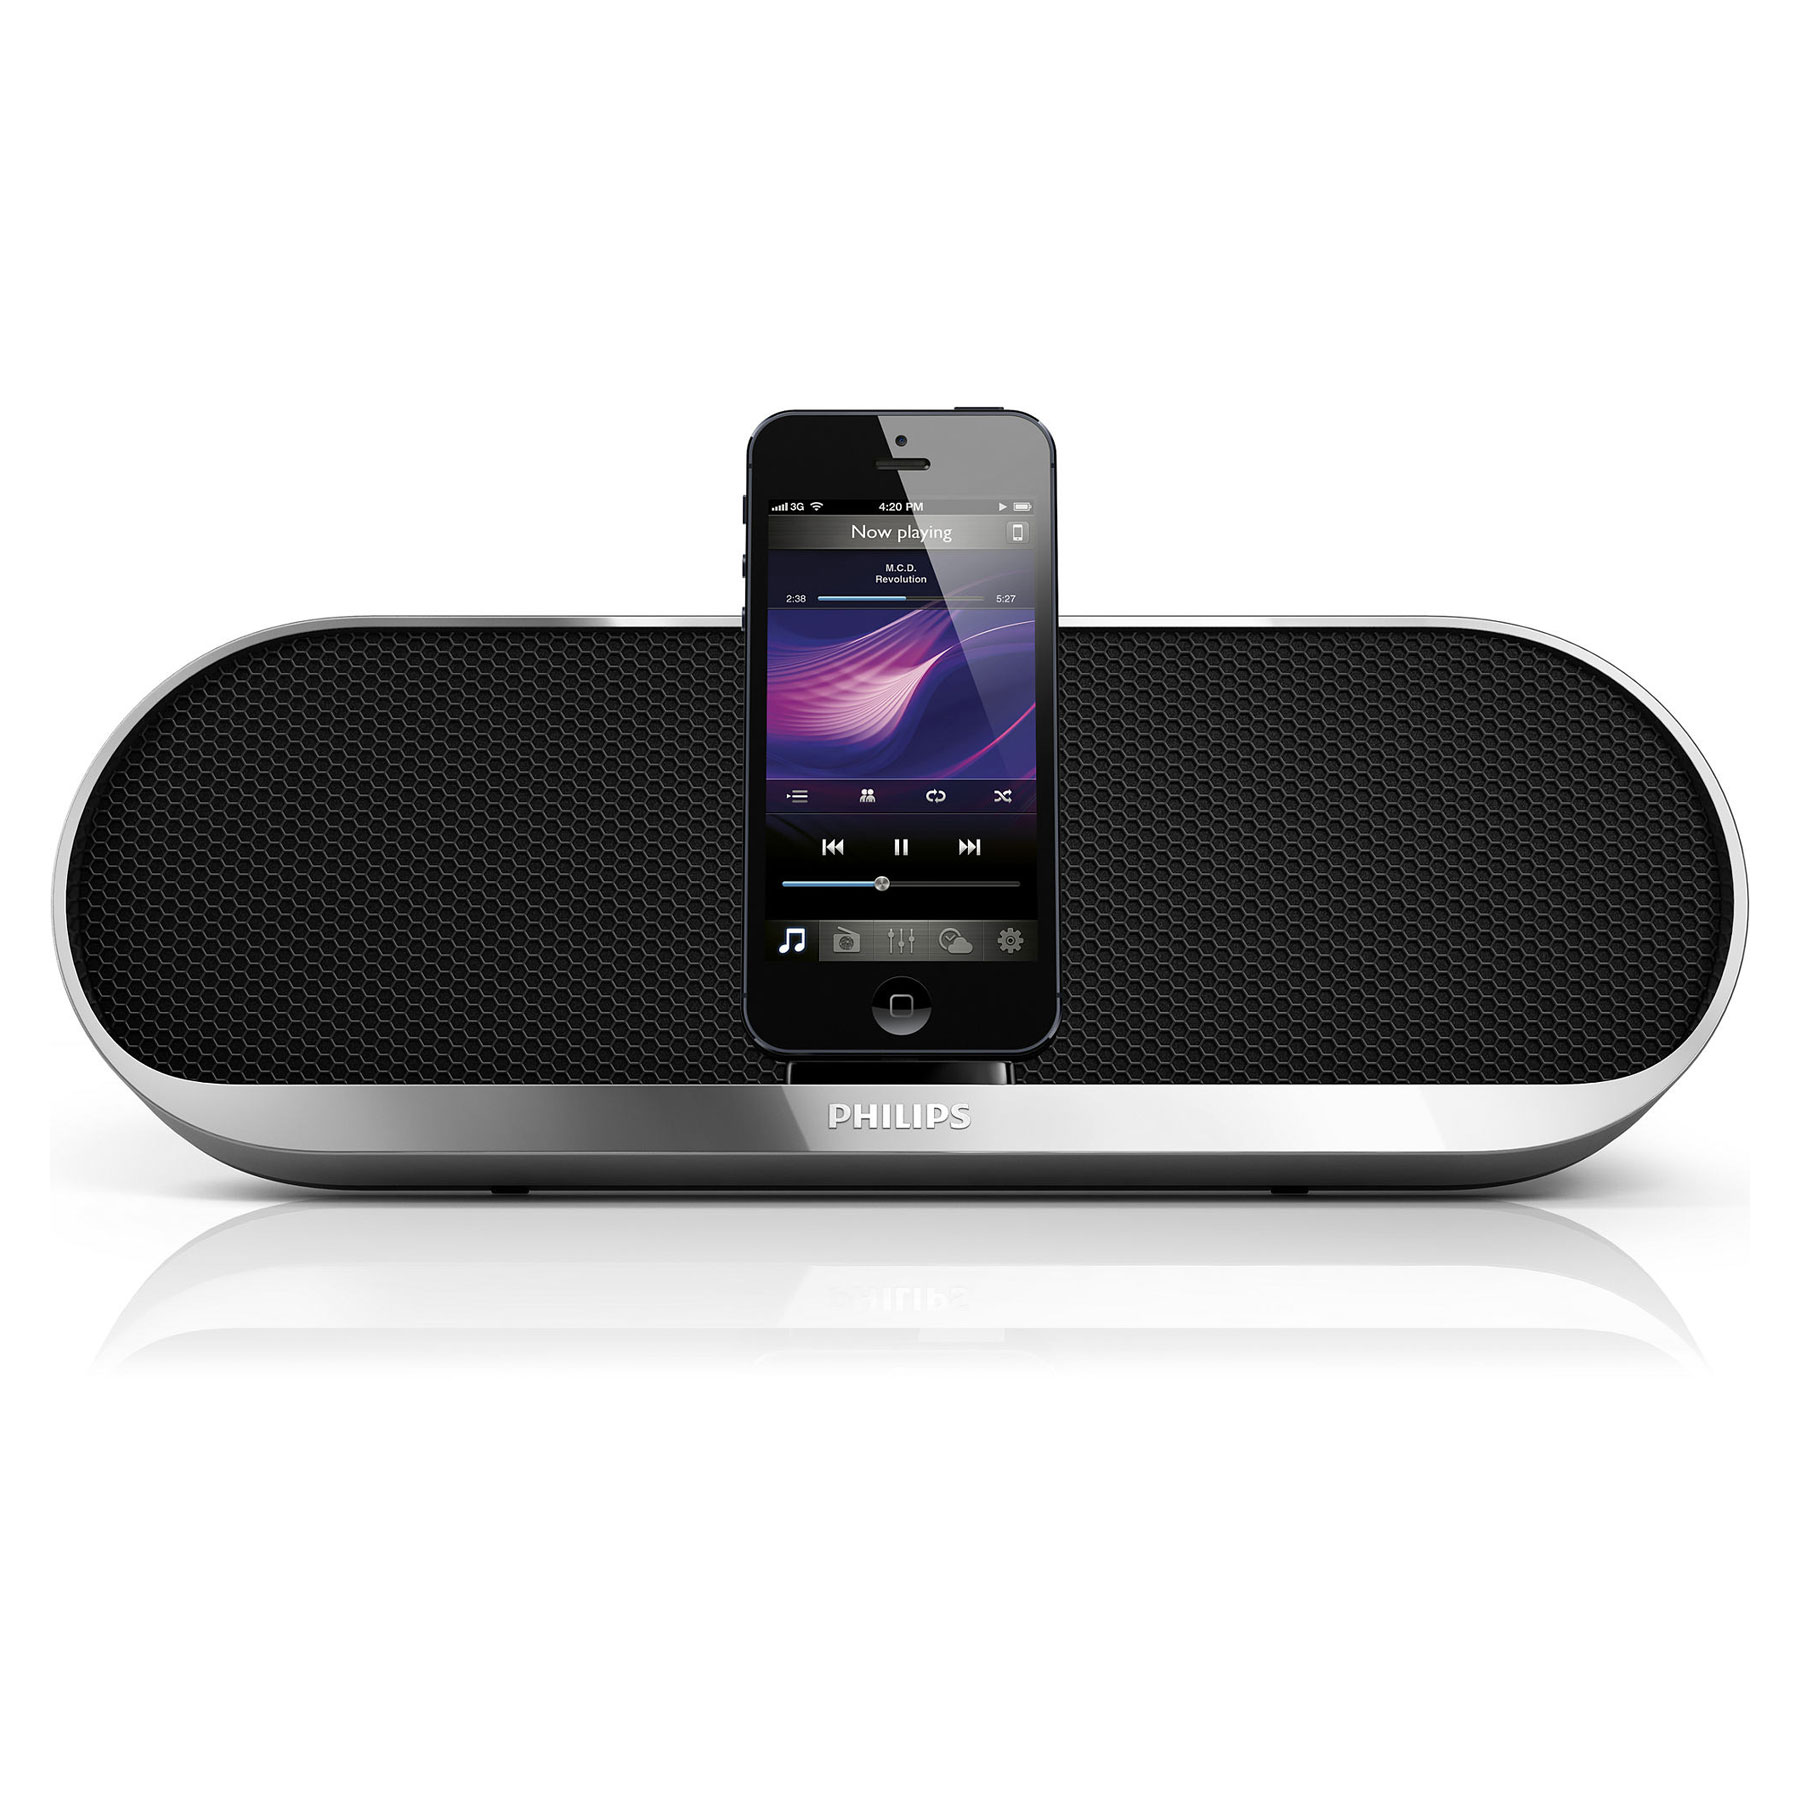 philips ds7580 dock enceinte bluetooth philips sur ldlc. Black Bedroom Furniture Sets. Home Design Ideas